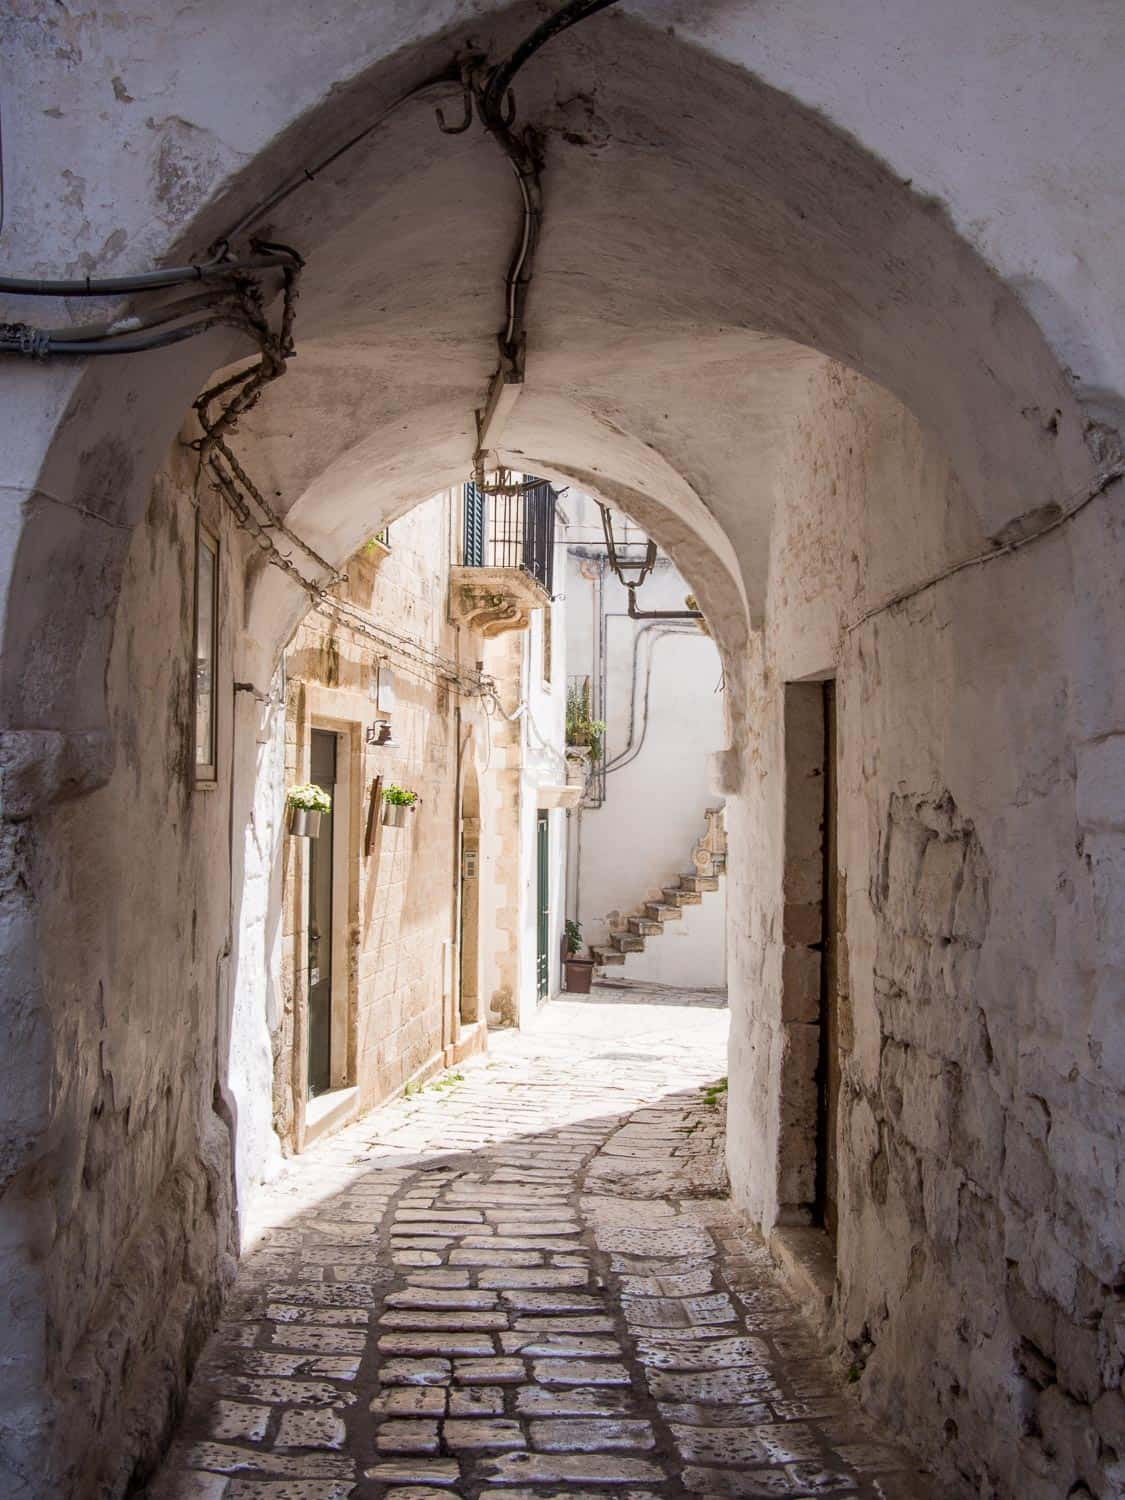 Narrow streets of Ceglie Messapica, a town in Puglia Italy